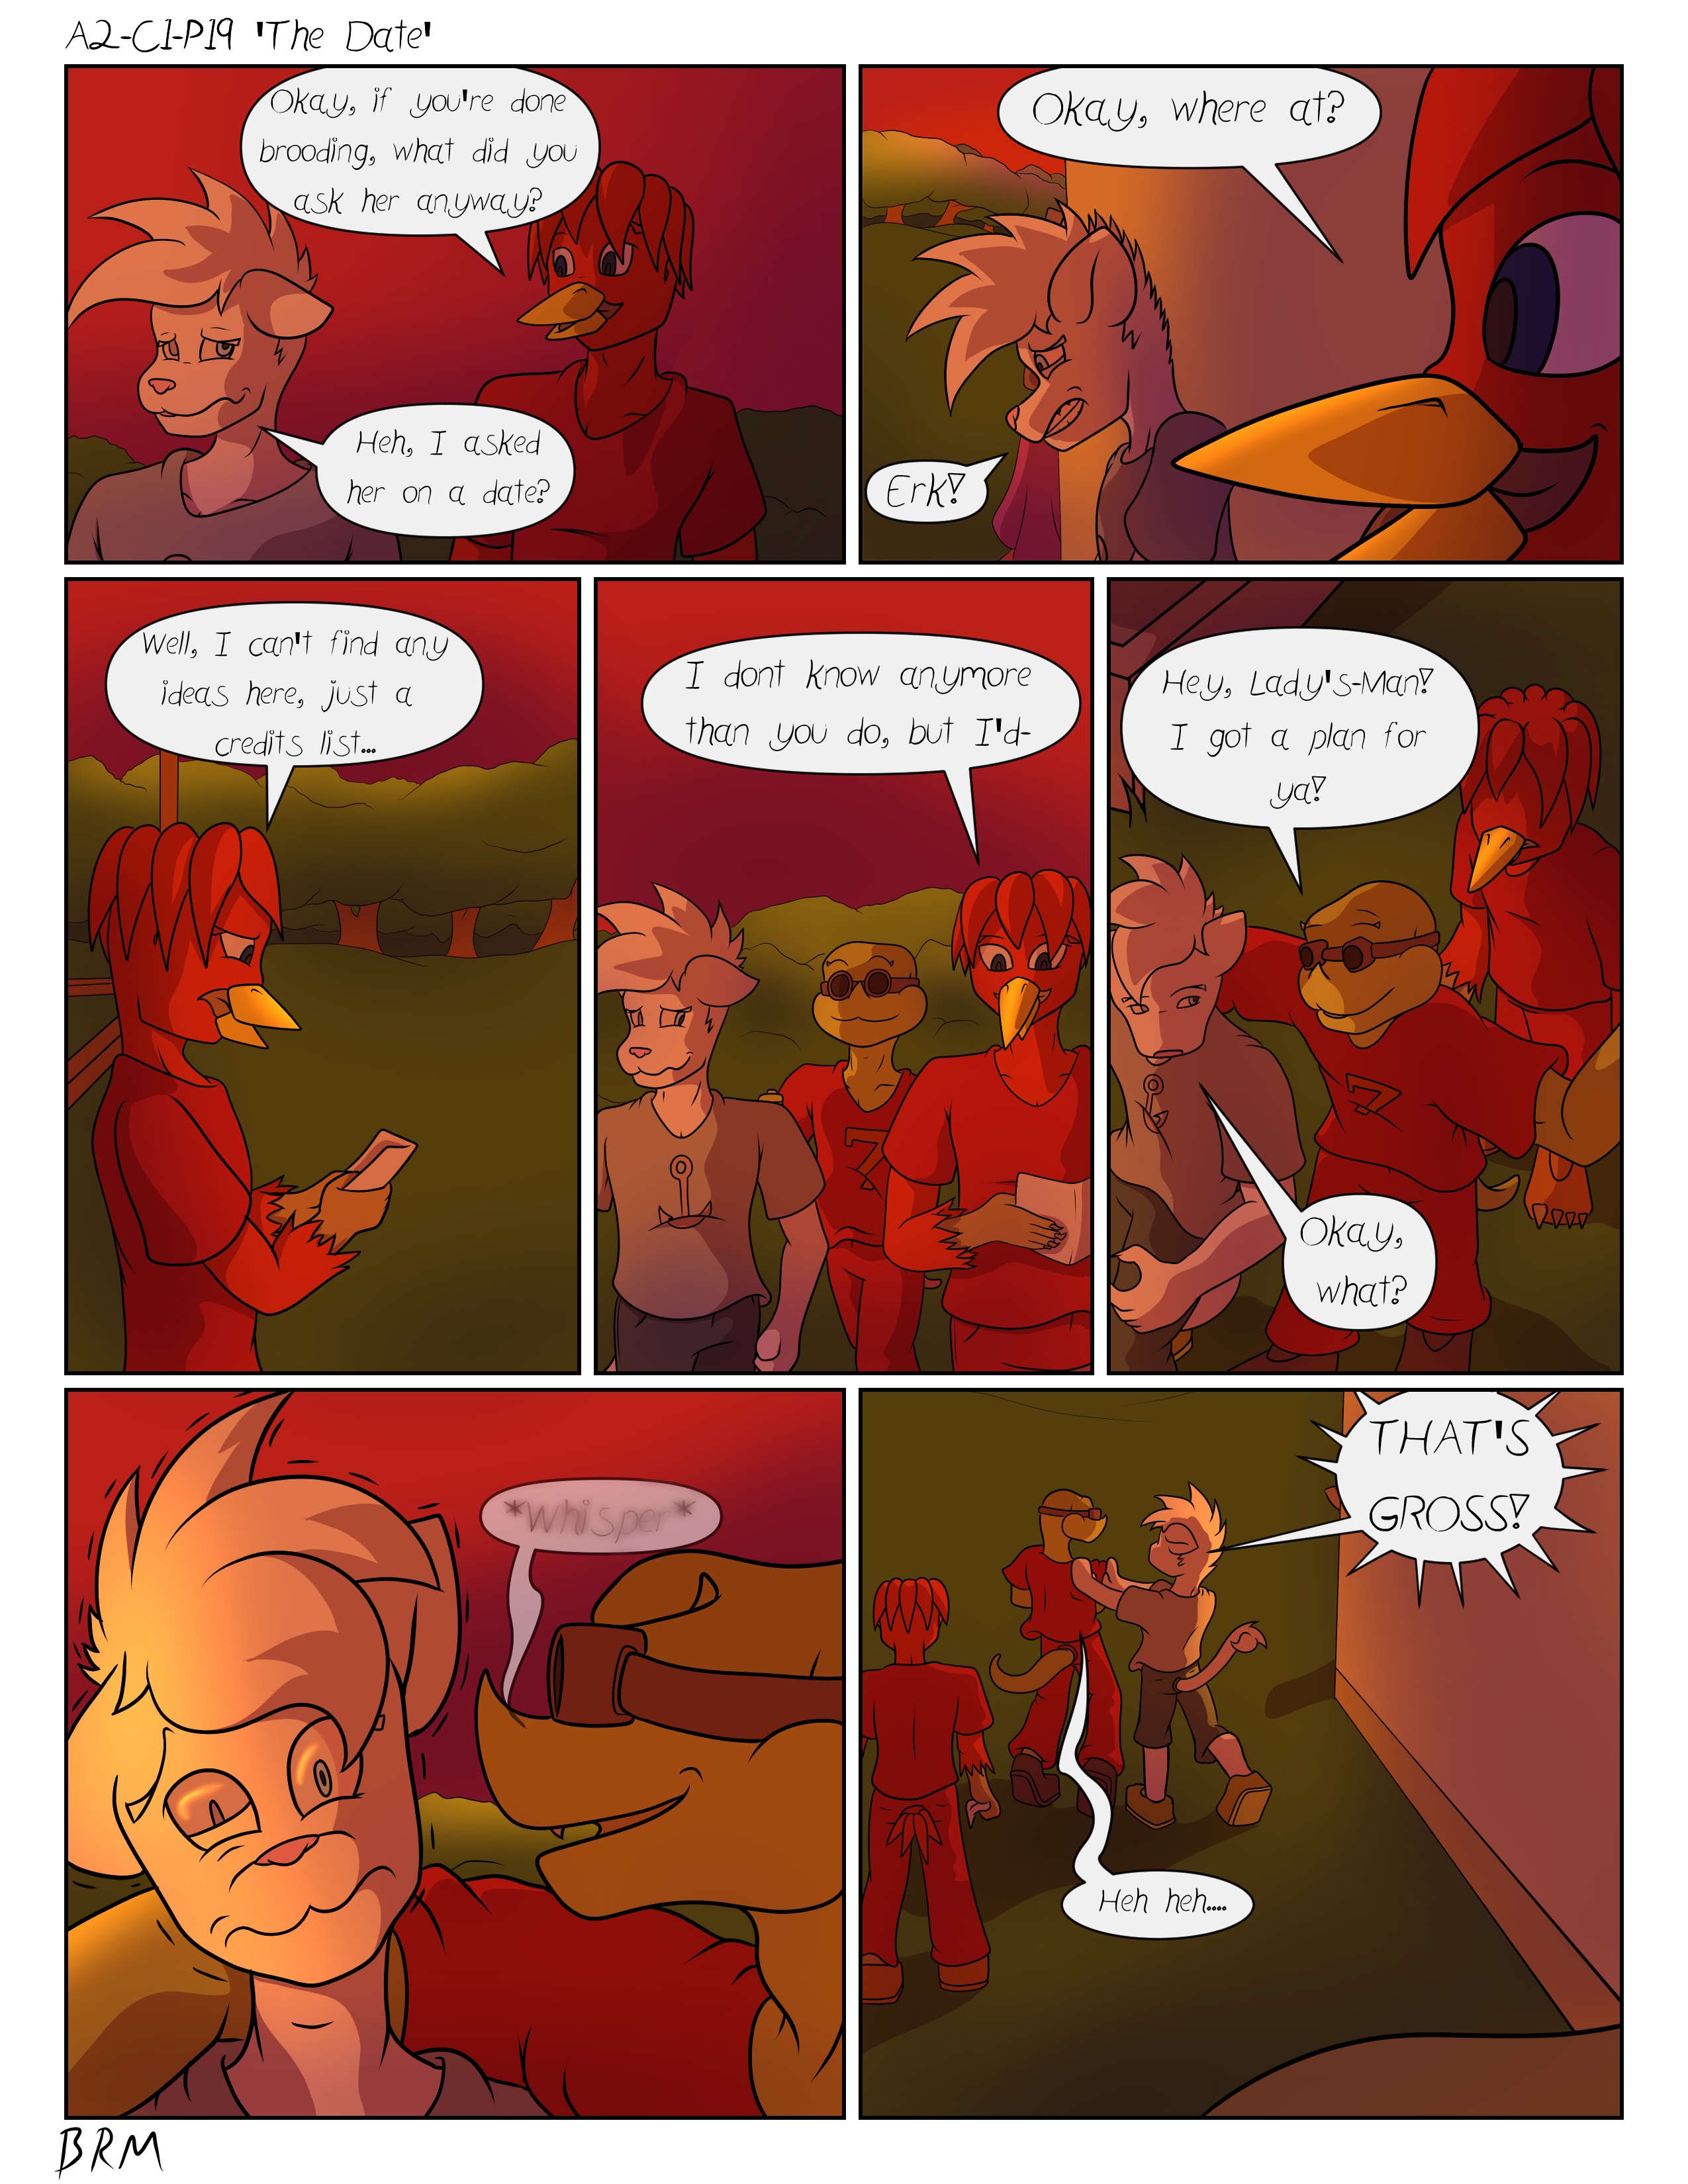 A2-C1-P19 'The Date'